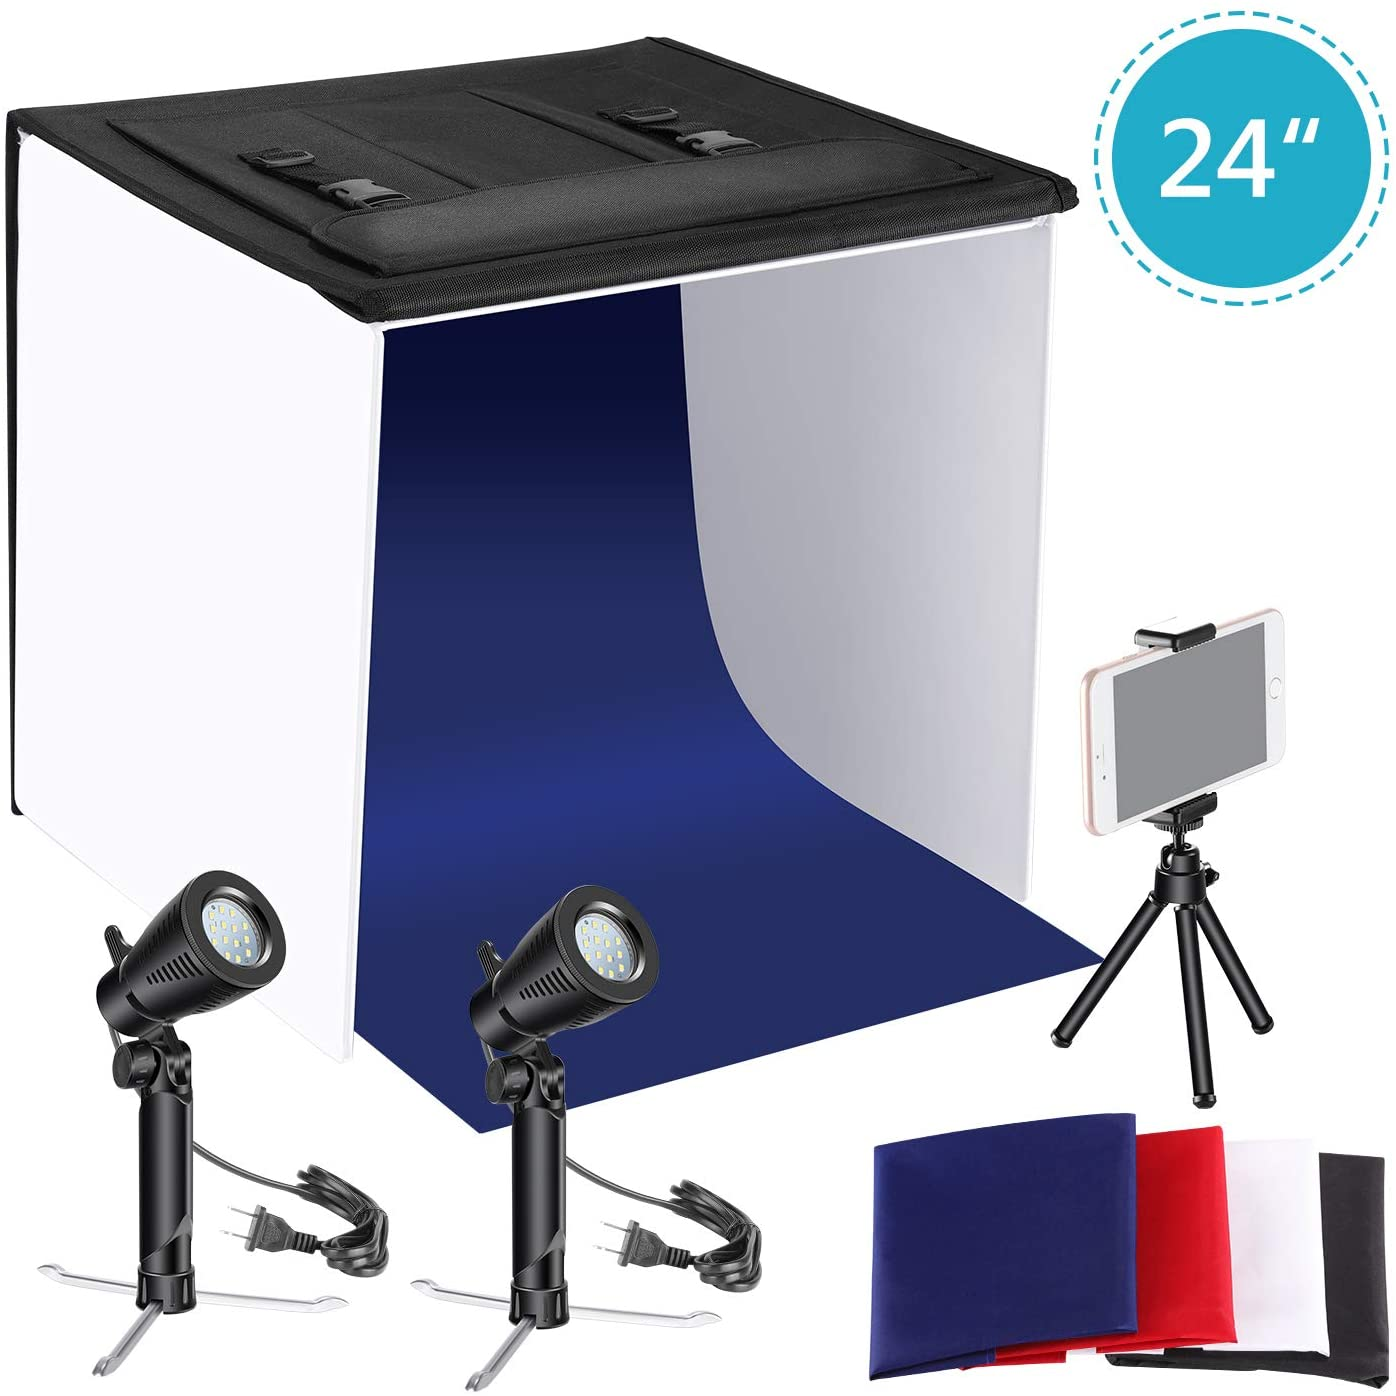 Neewer 24x24 inches Table Top Photography Studio Lighting Light Tent Kit with Foldable Shooting Box, Led Light, Mini Tripod, Phone Holder, 4 Color Backdrops for Product Shooting Advertising